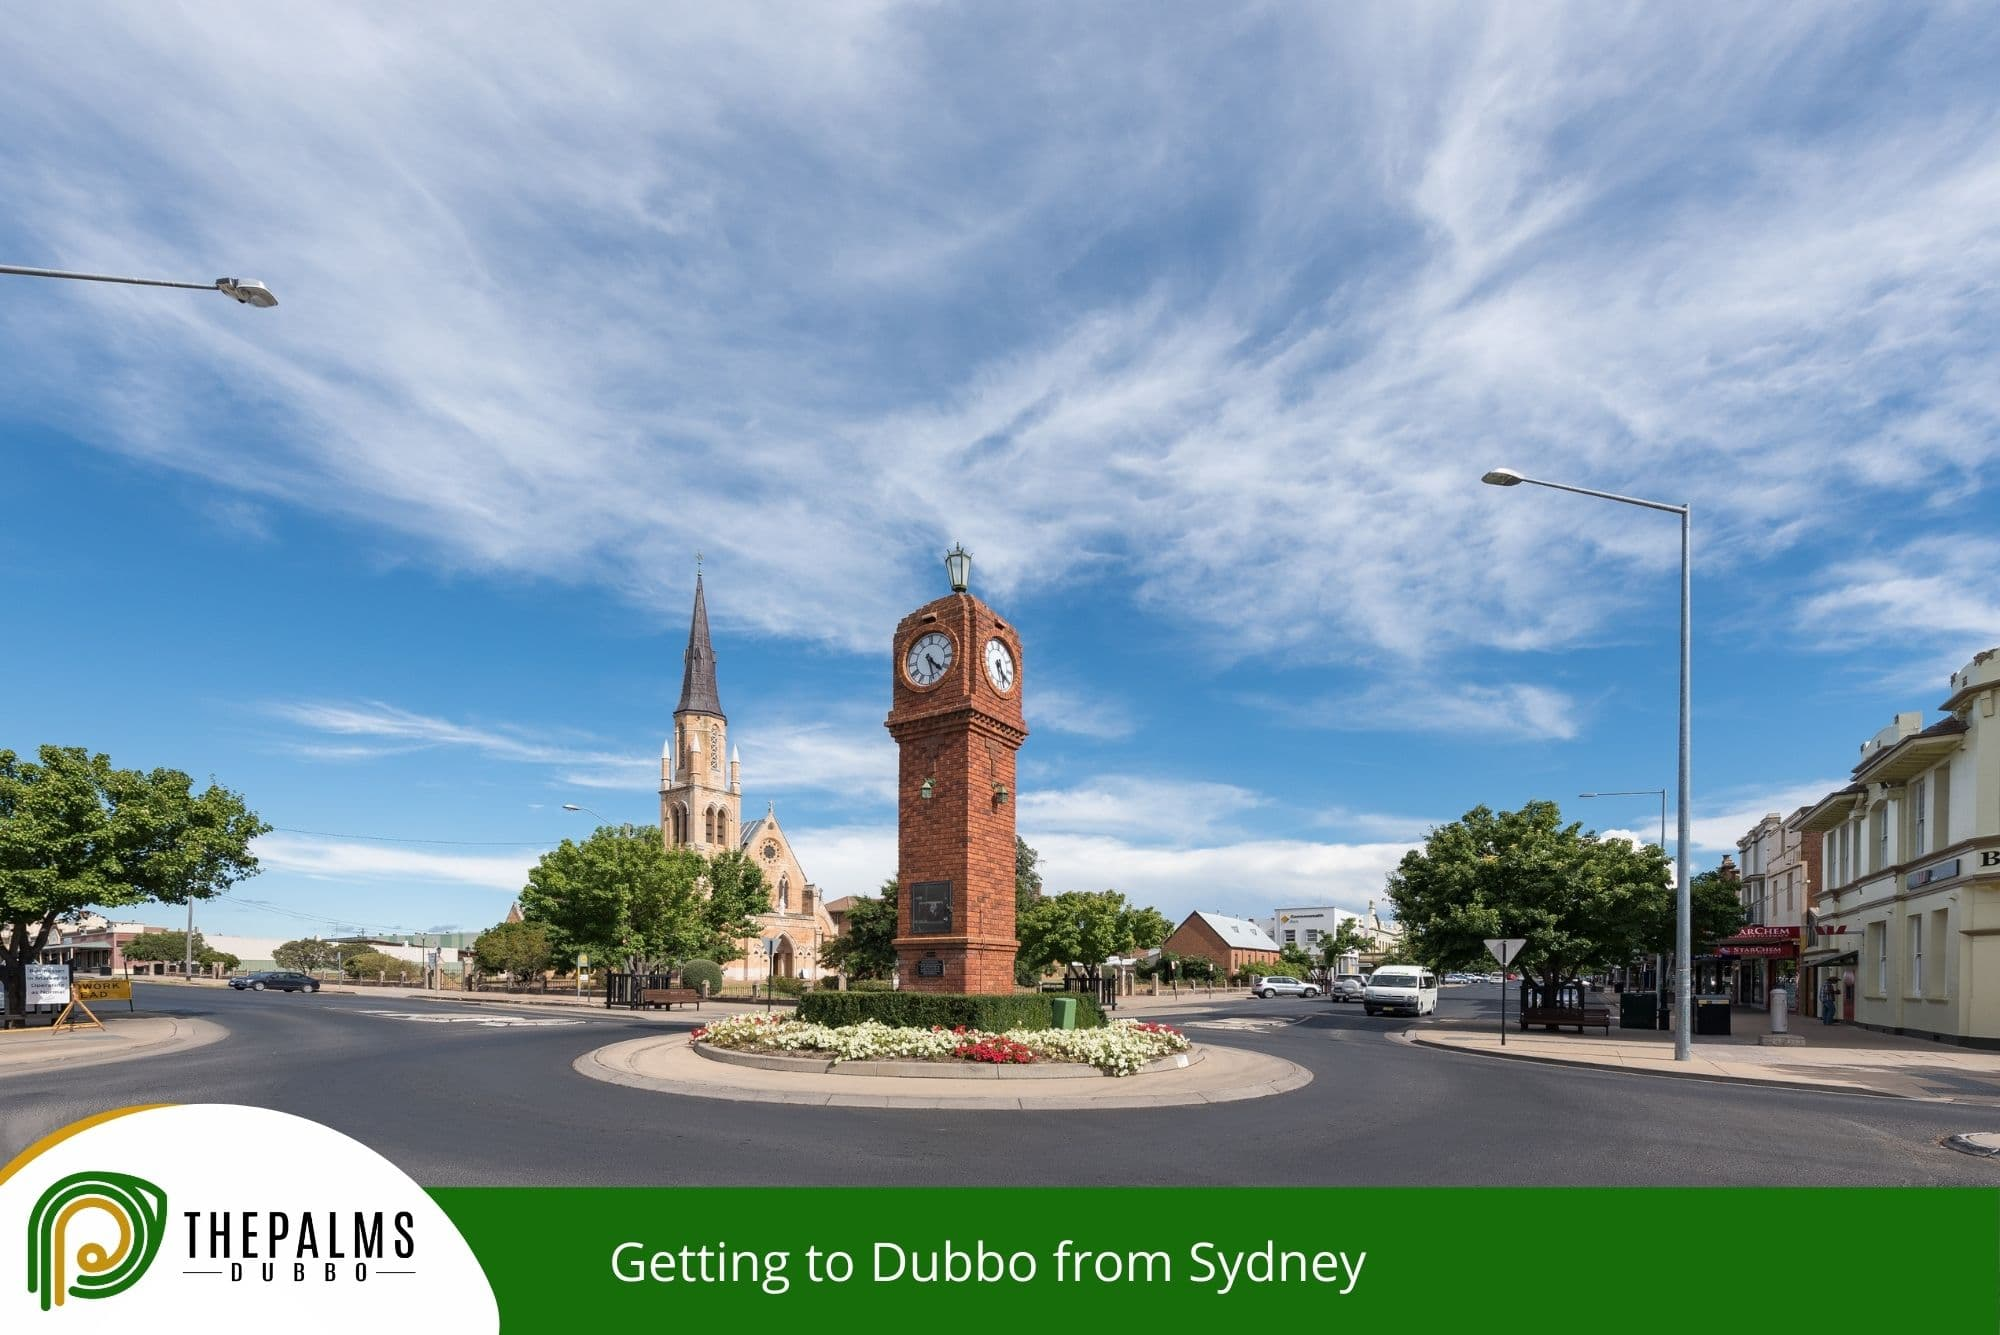 Getting to Dubbo from Sydney